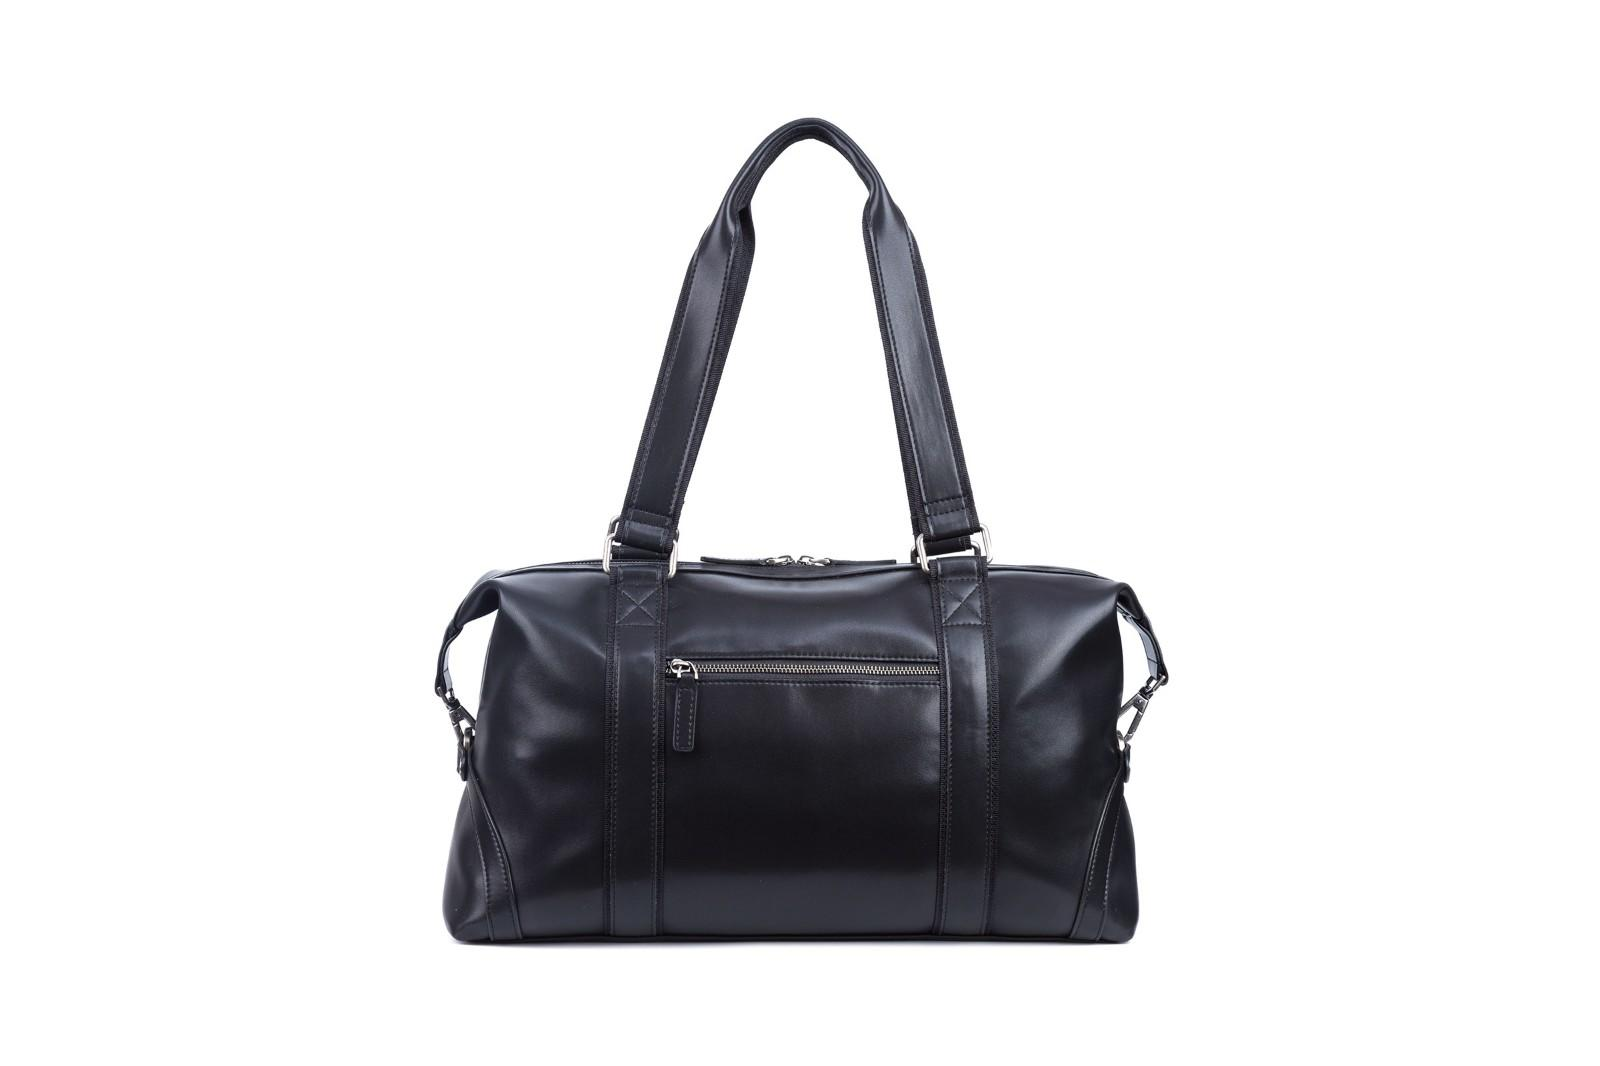 weekend duffle bag mens leather for boy GF bags